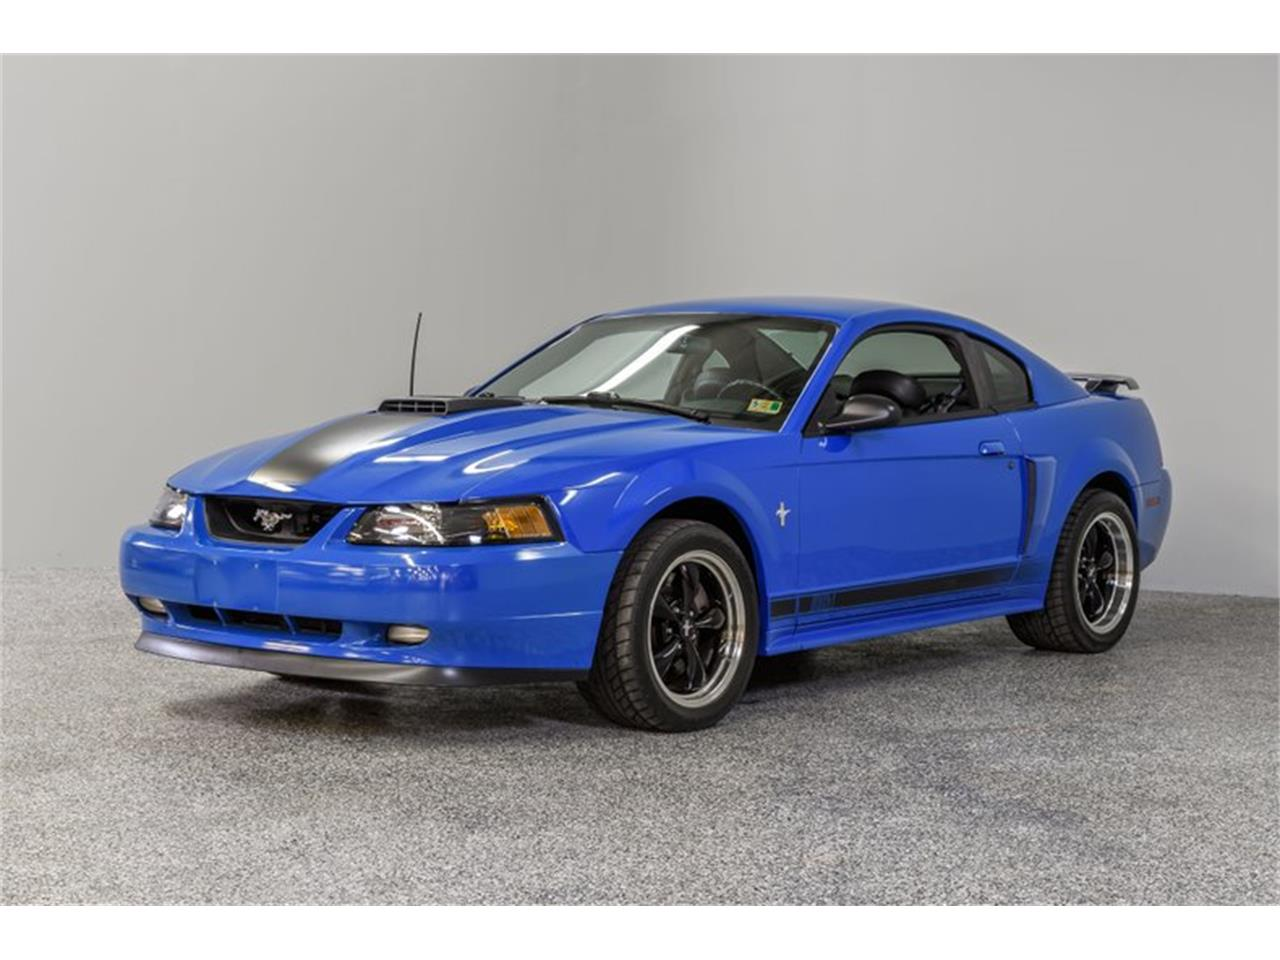 Large picture of 03 mustang p4bo